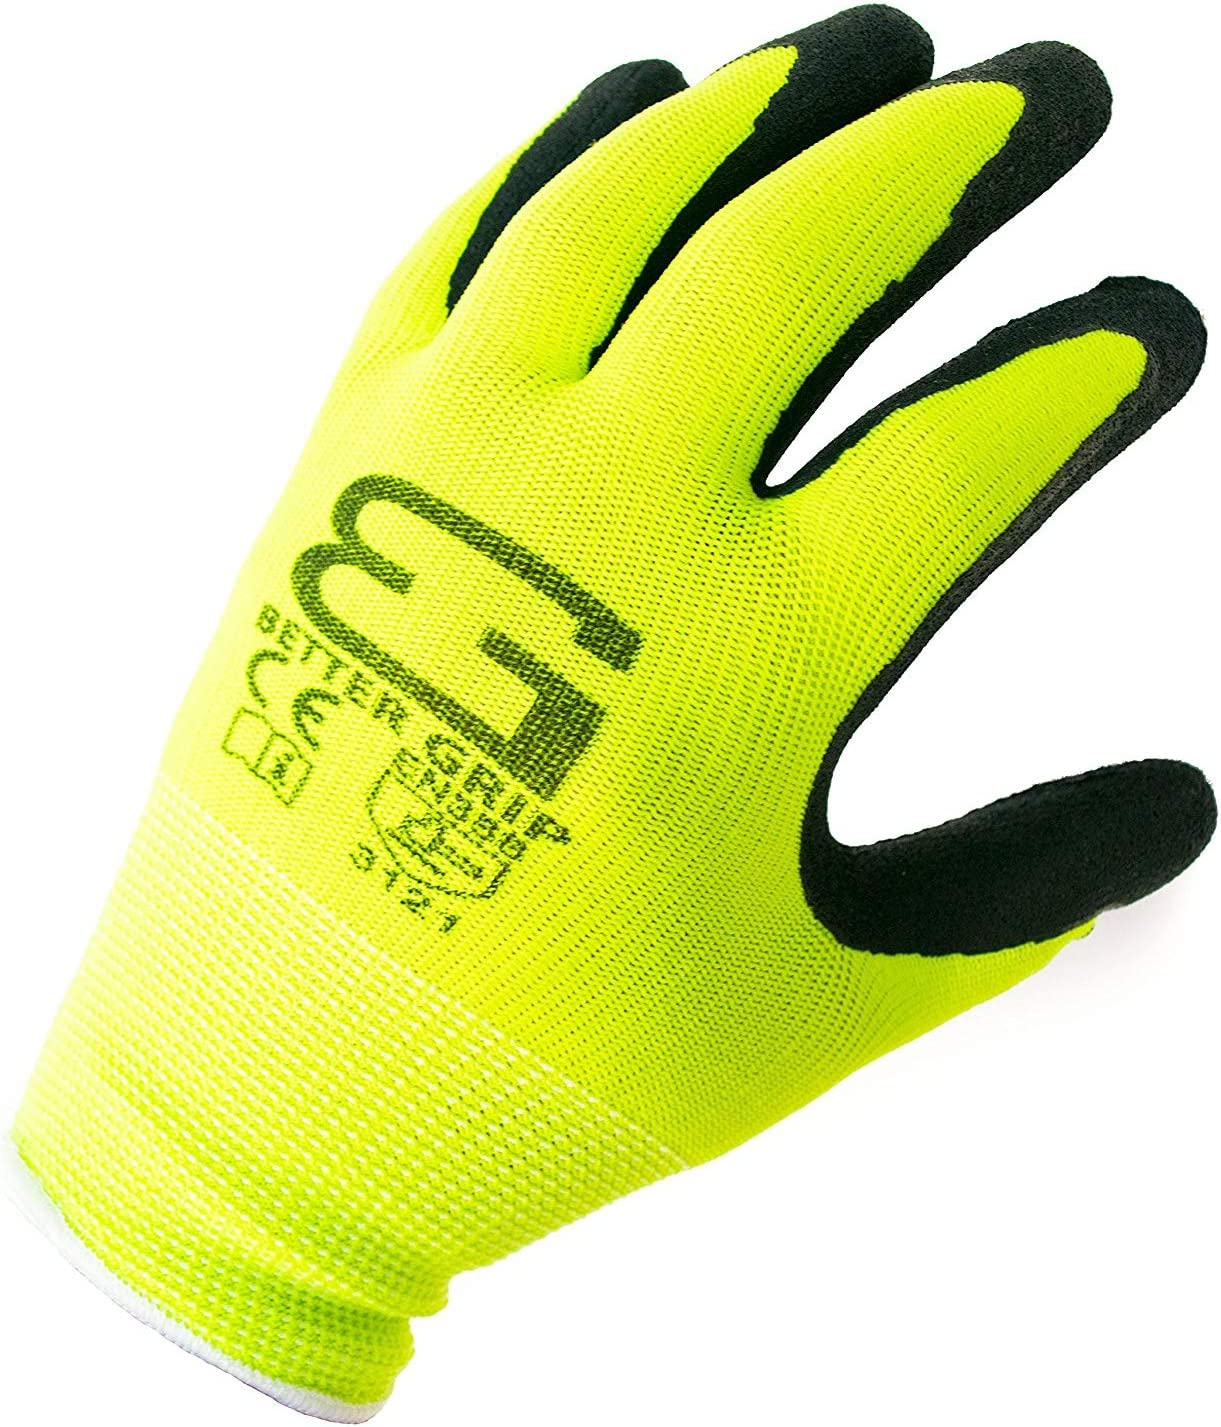 Better Grip Ultra-Thin BGSL1 Nylon Sandy Latex Coated Work Gloves, 4 Pairs/Pack (Extra Large, Lime)